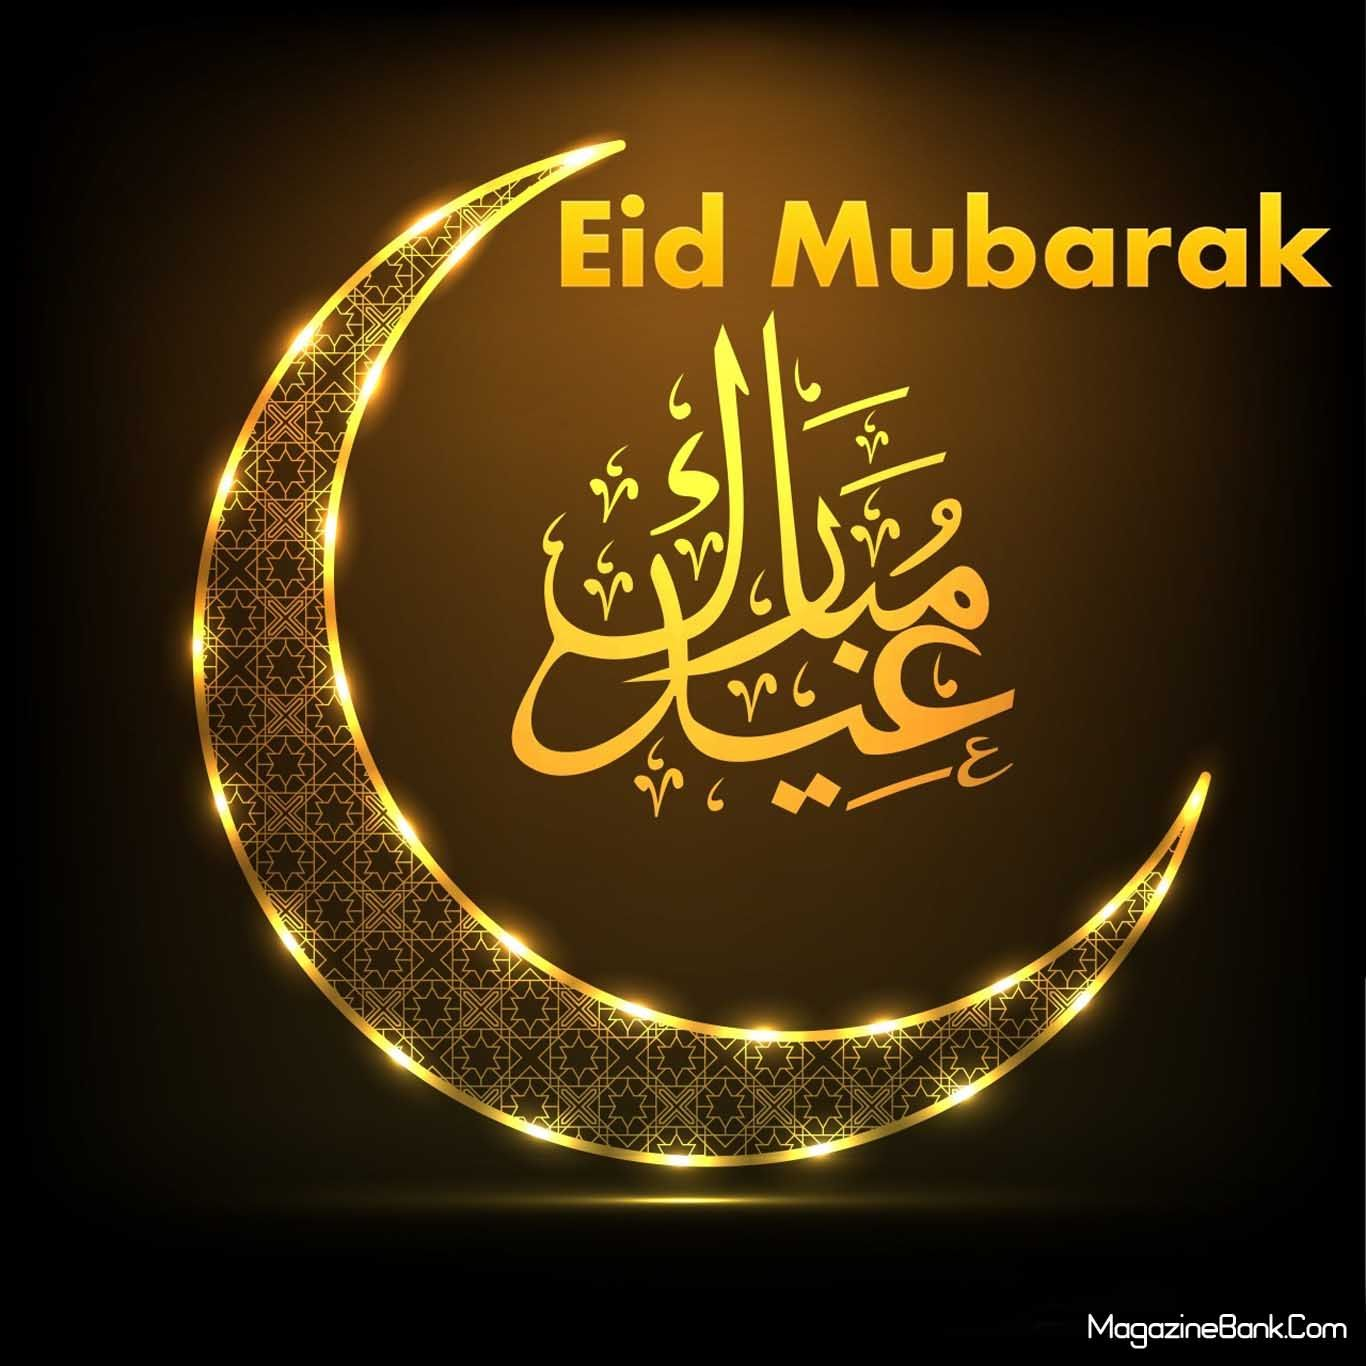 Eid Mubarak 2015 Images And Hd Wallpapers Free Download Eid